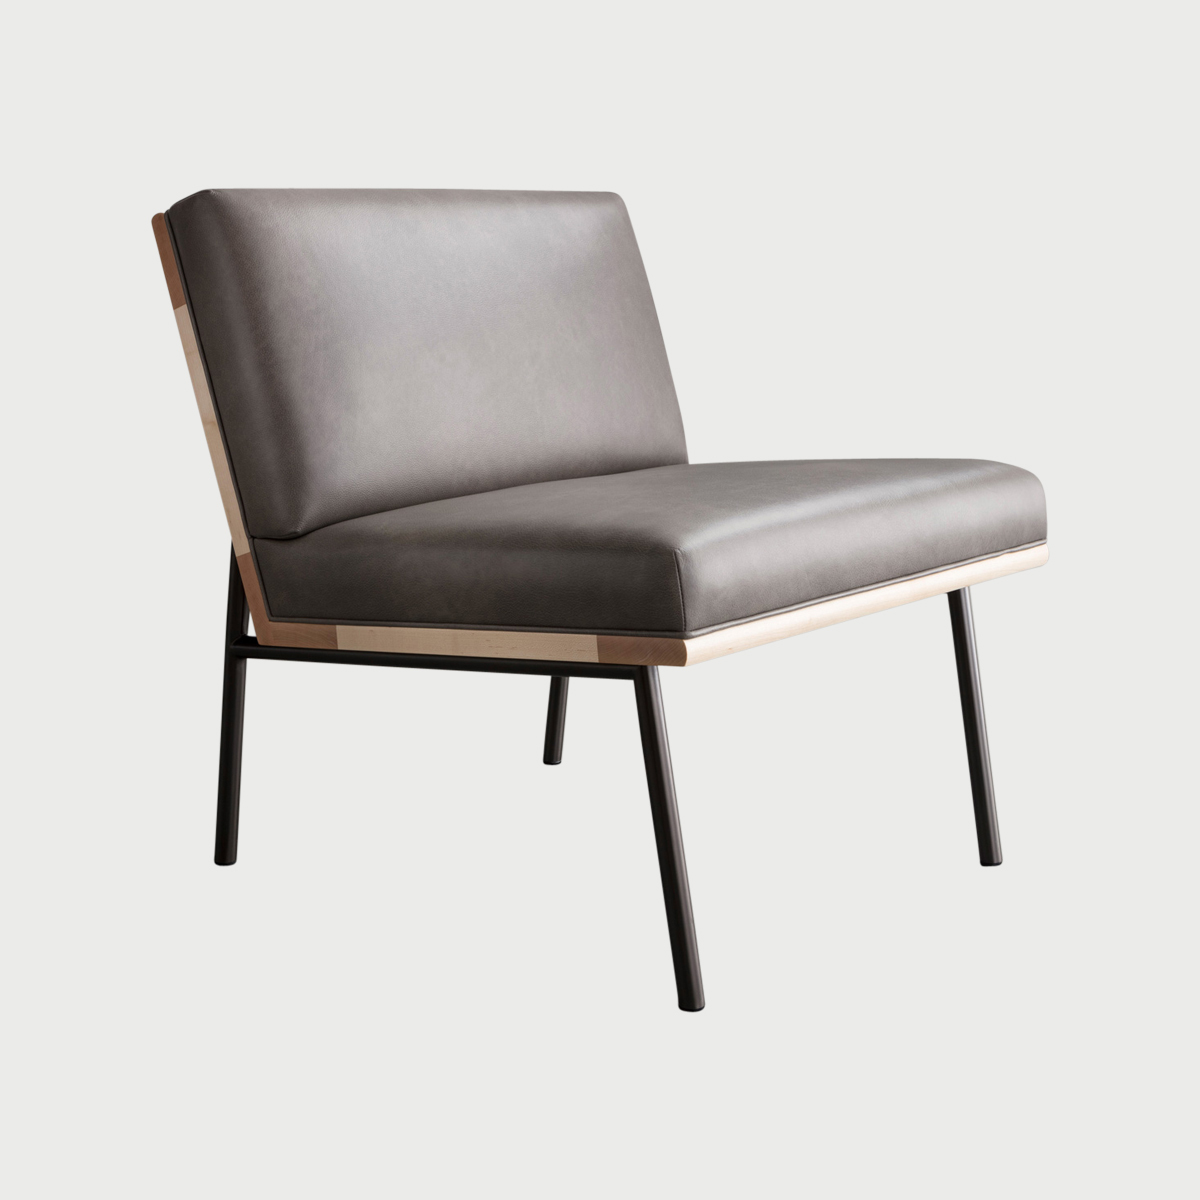 Dgd lounge chair1 edit web  281 29